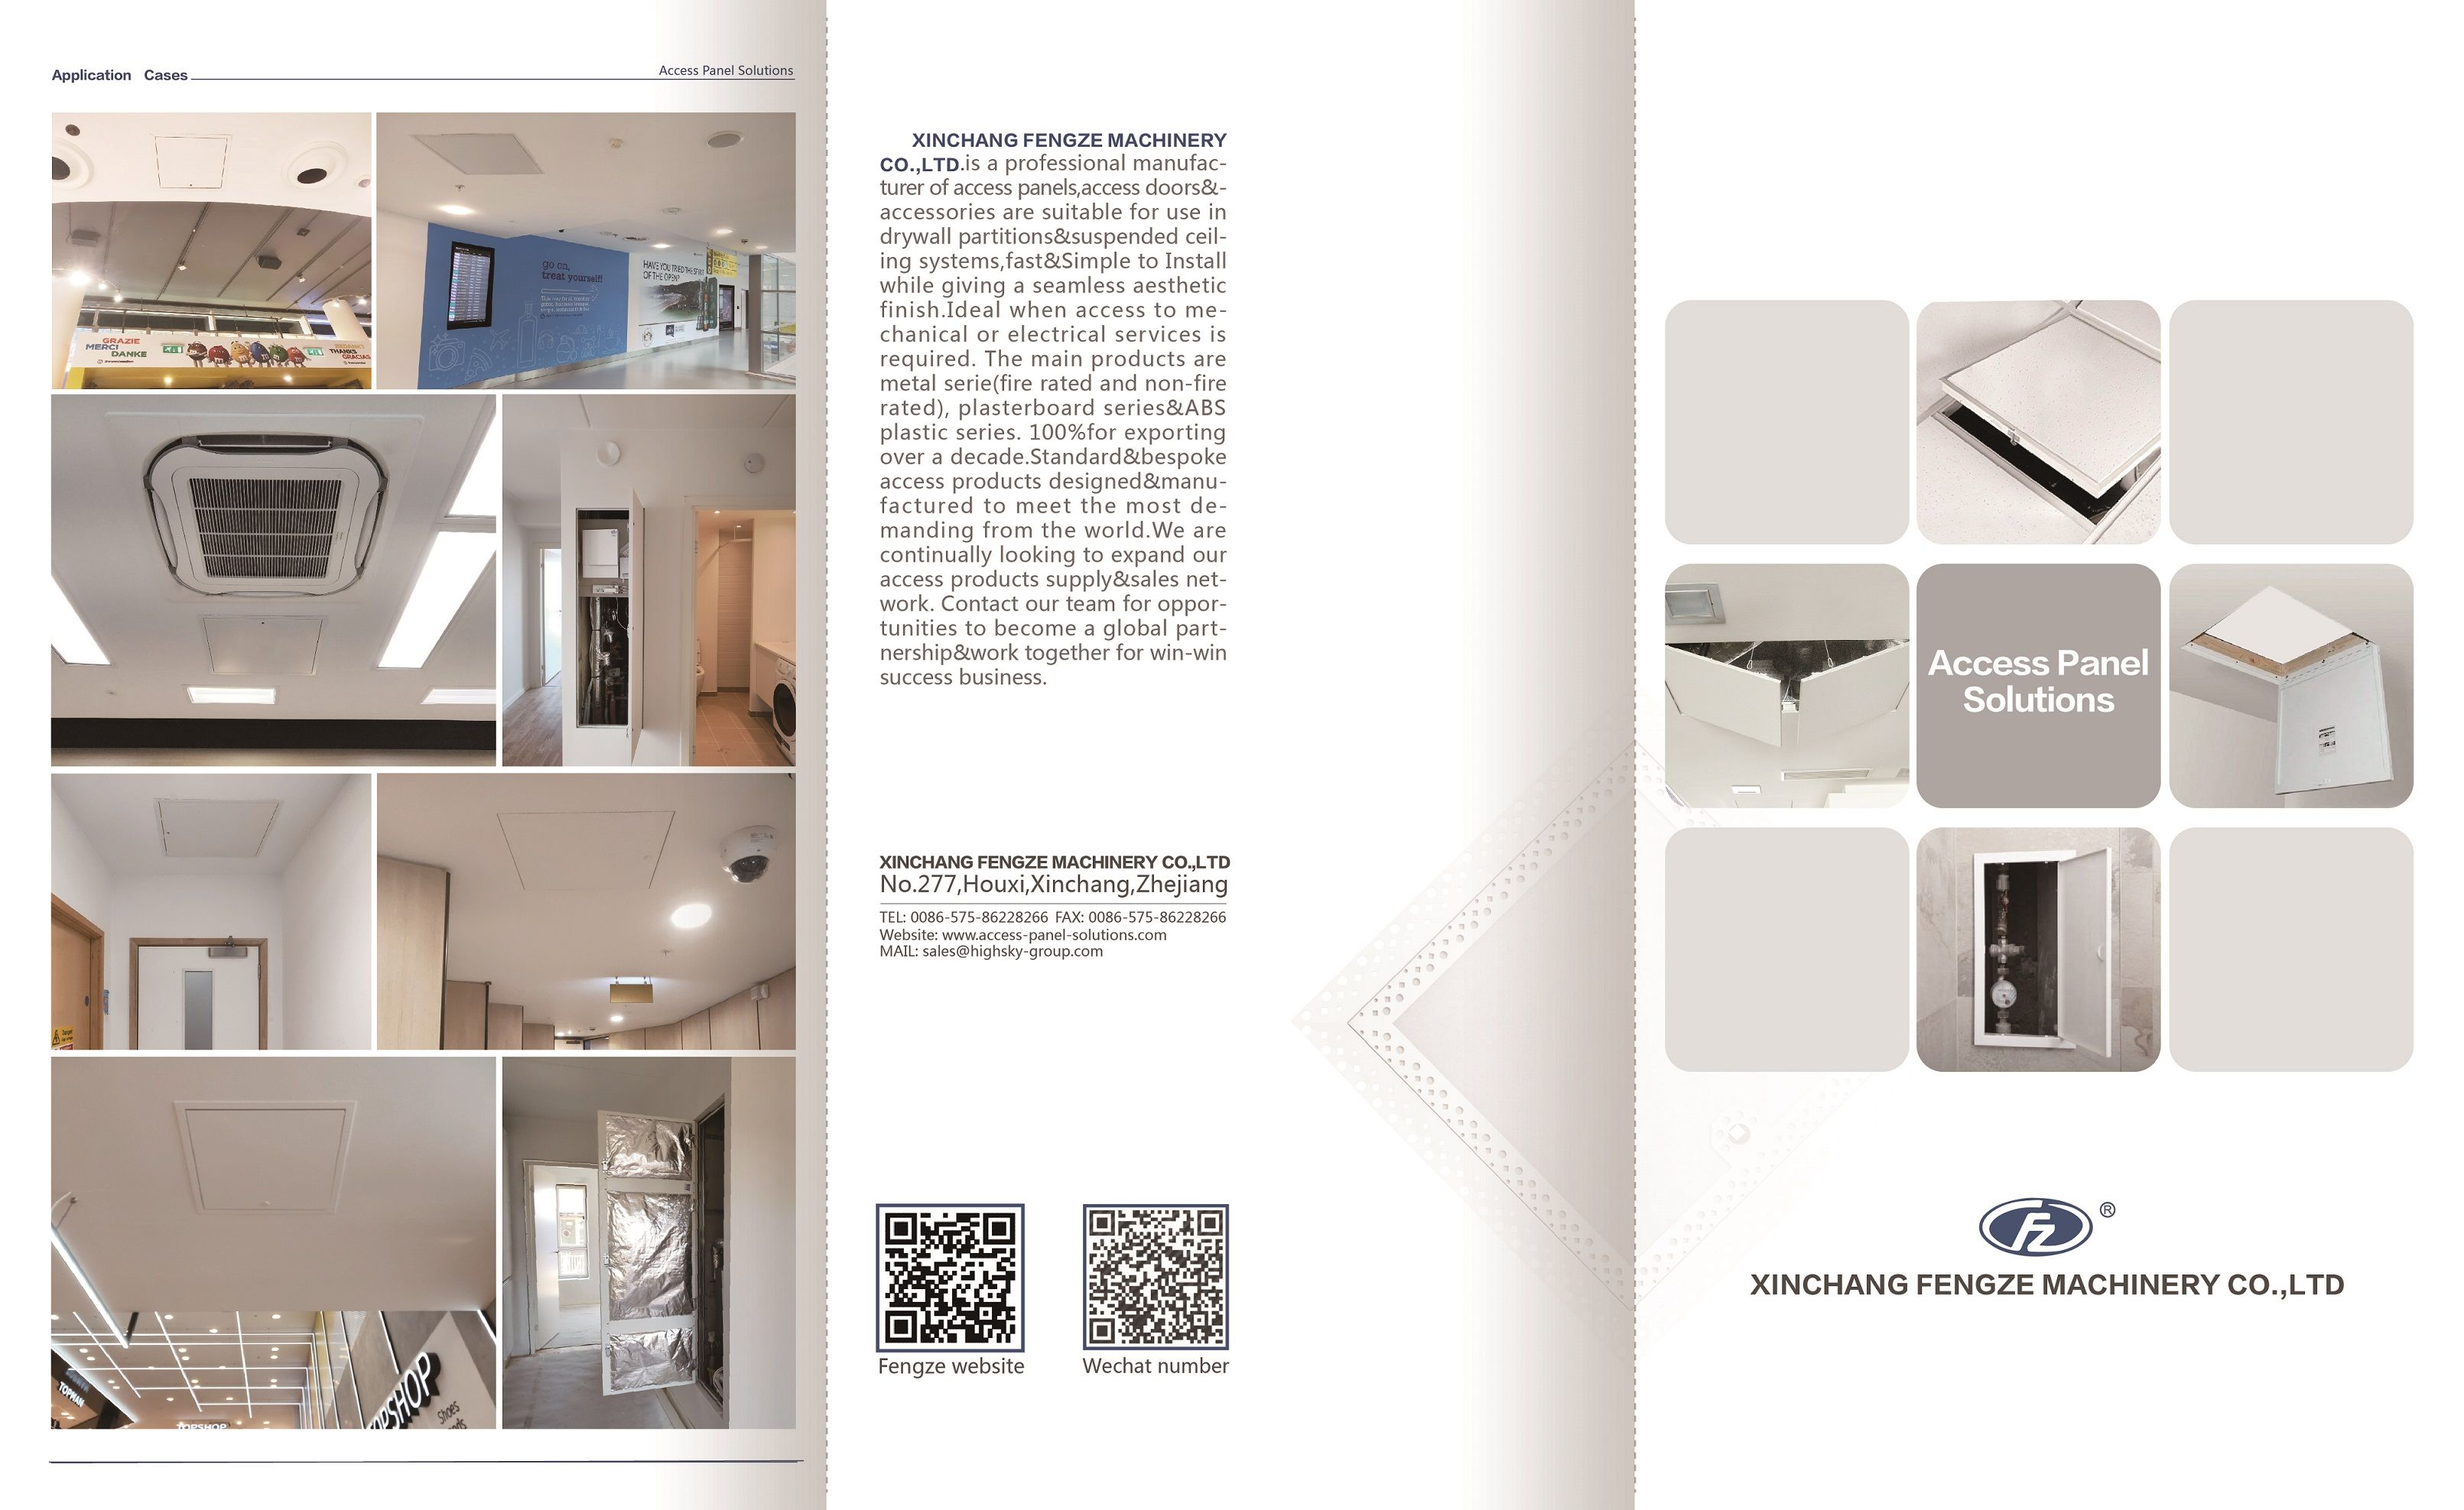 Fzmachineraccesspanelcatalogue Our New Designed Catalogue